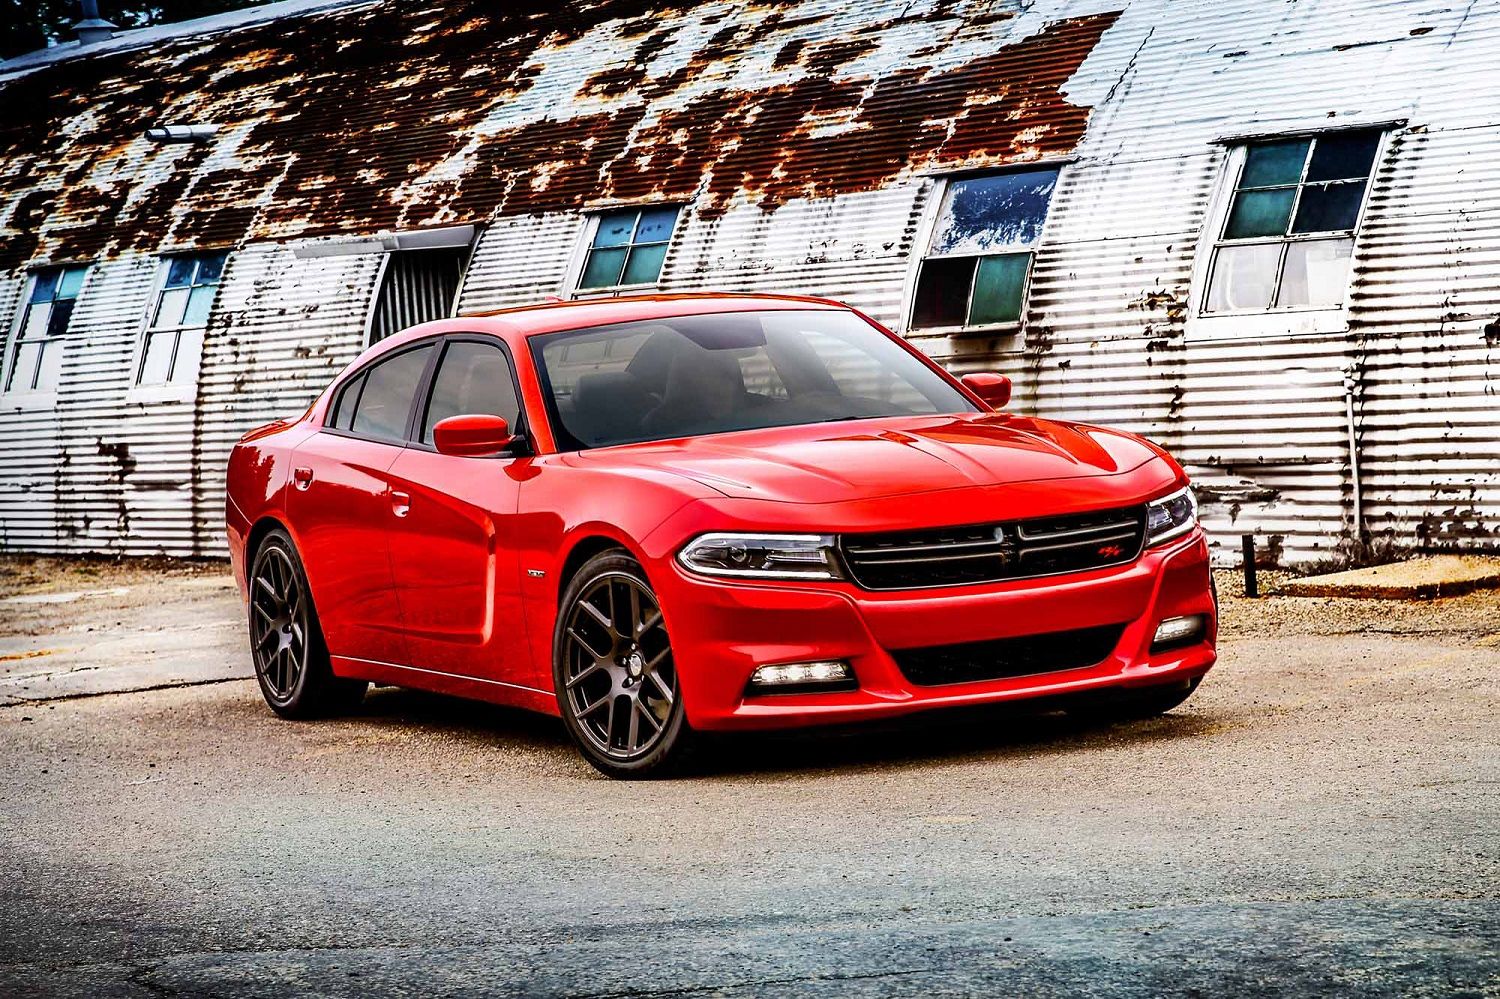 2016 Dodge Charger 2 Door >> Could the Dodge Charger go turbo?